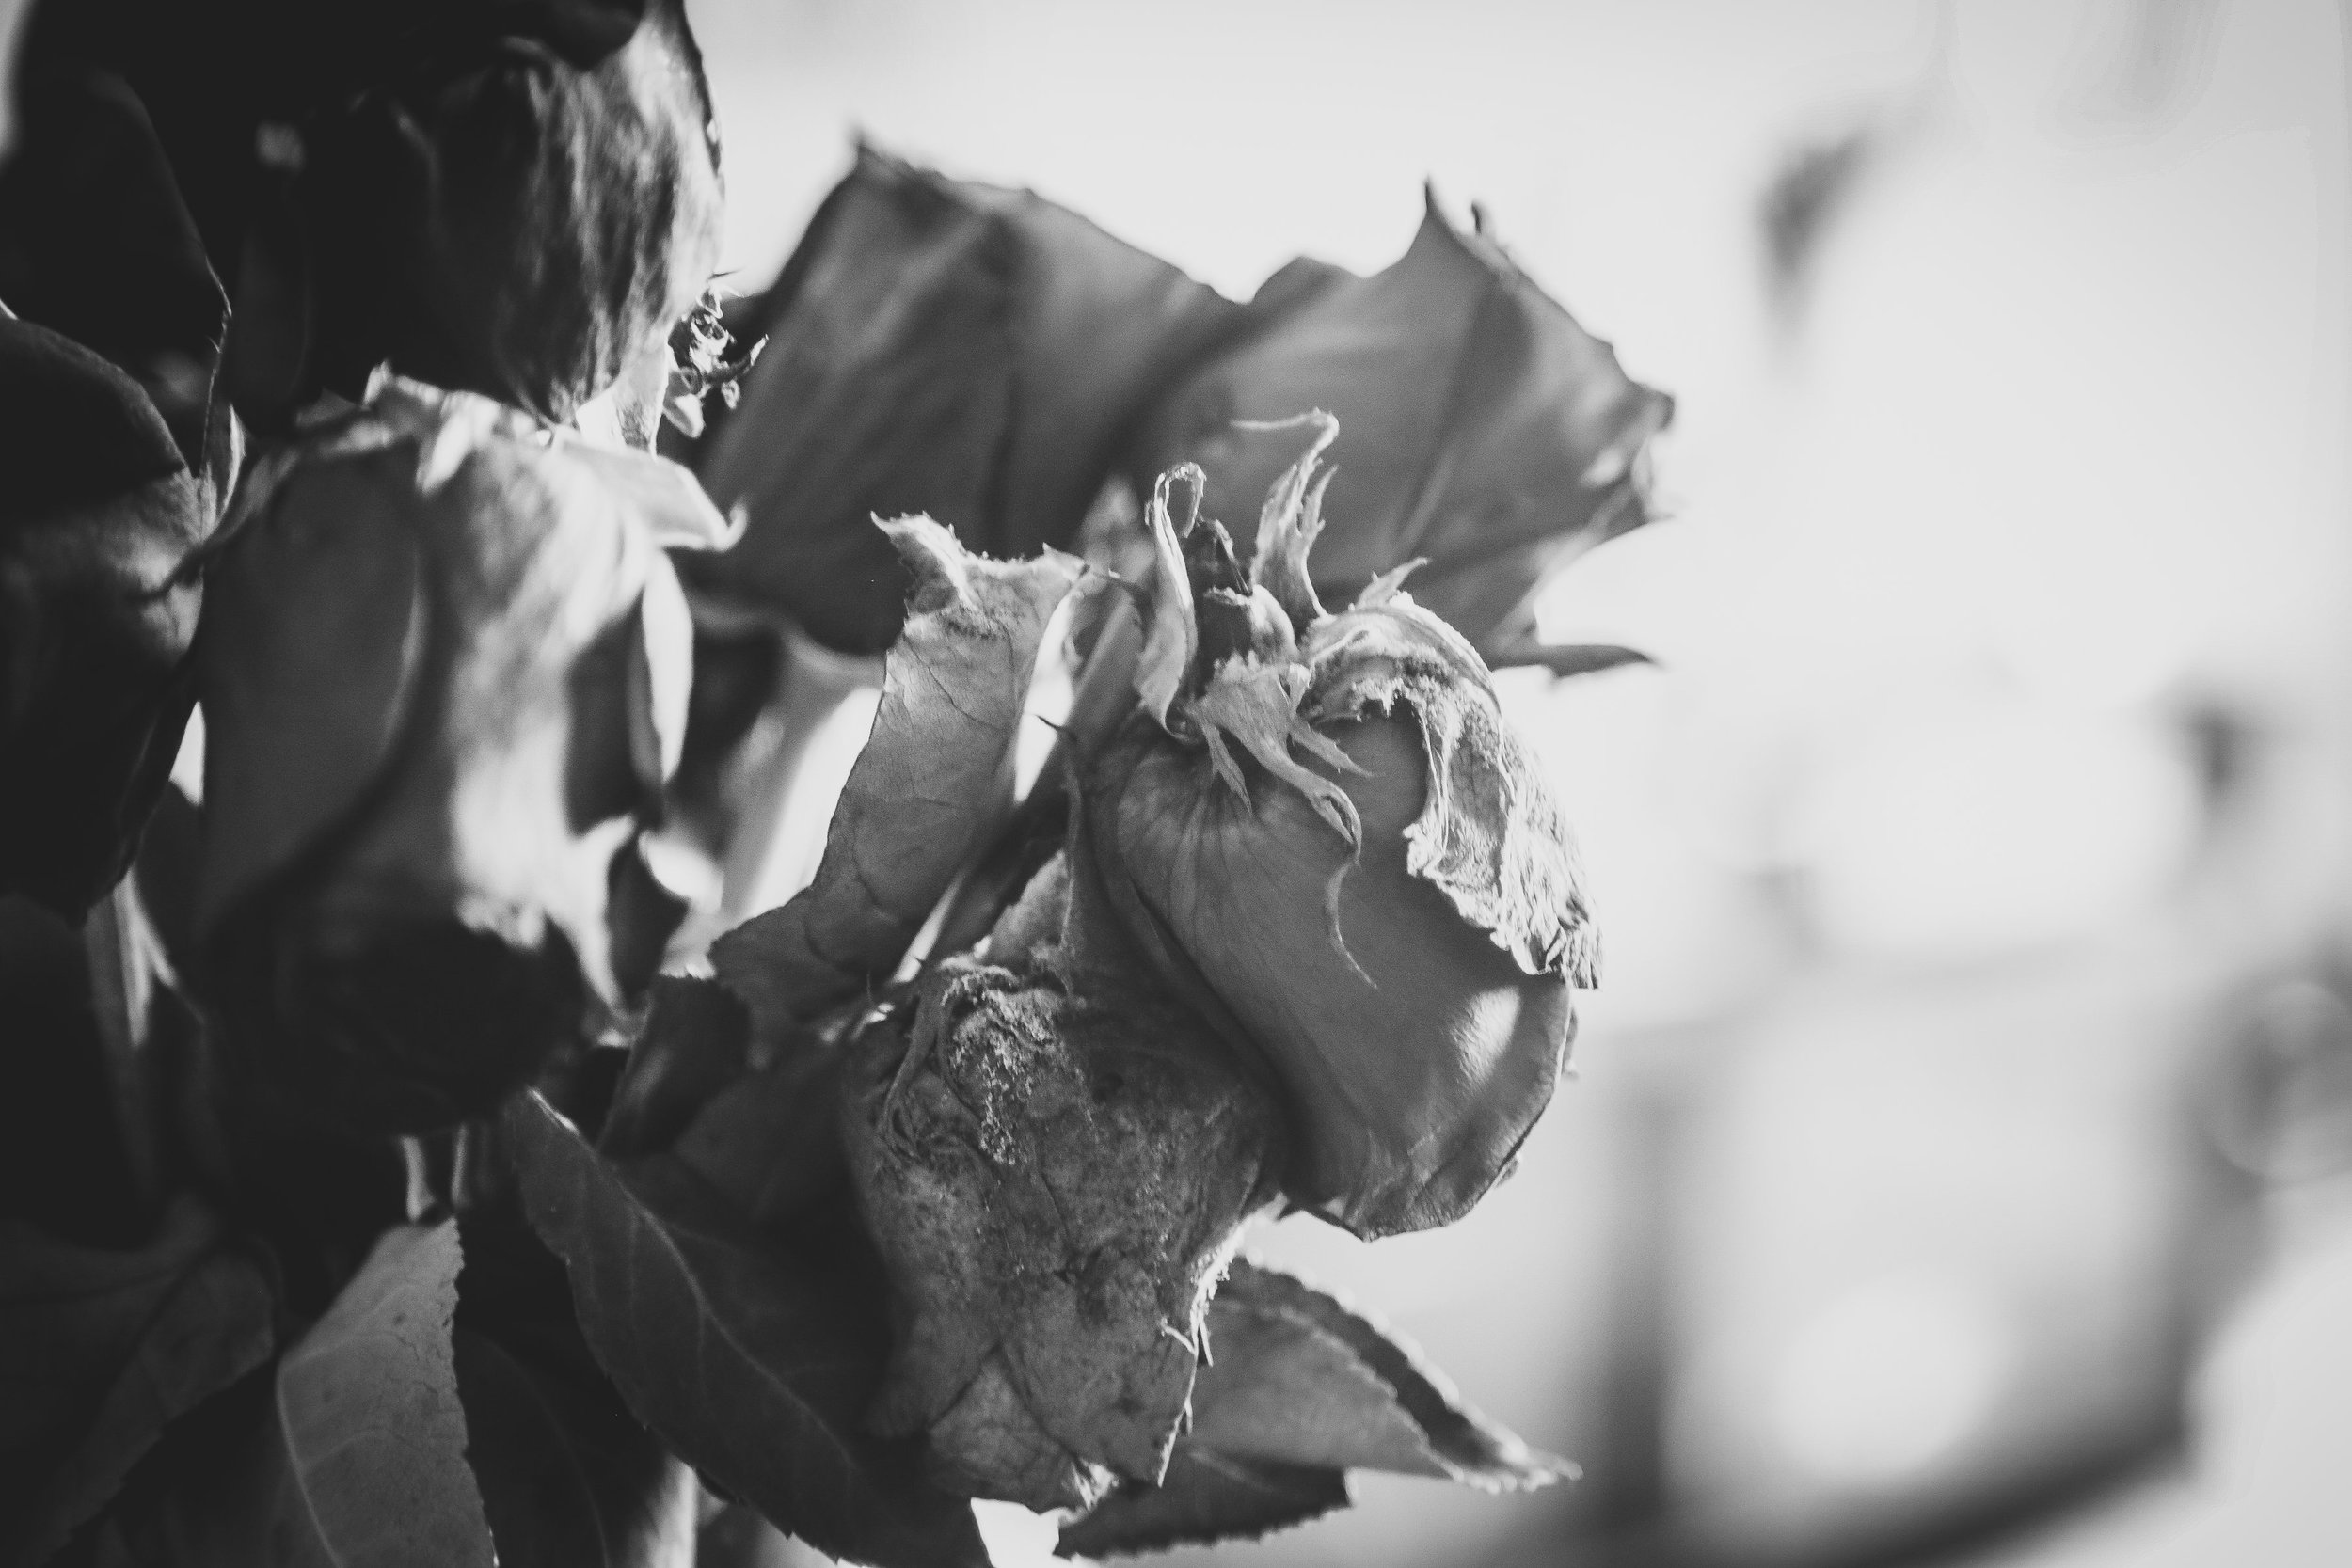 Finding beauty in withered roses was one of the most difficult things I learned to do.